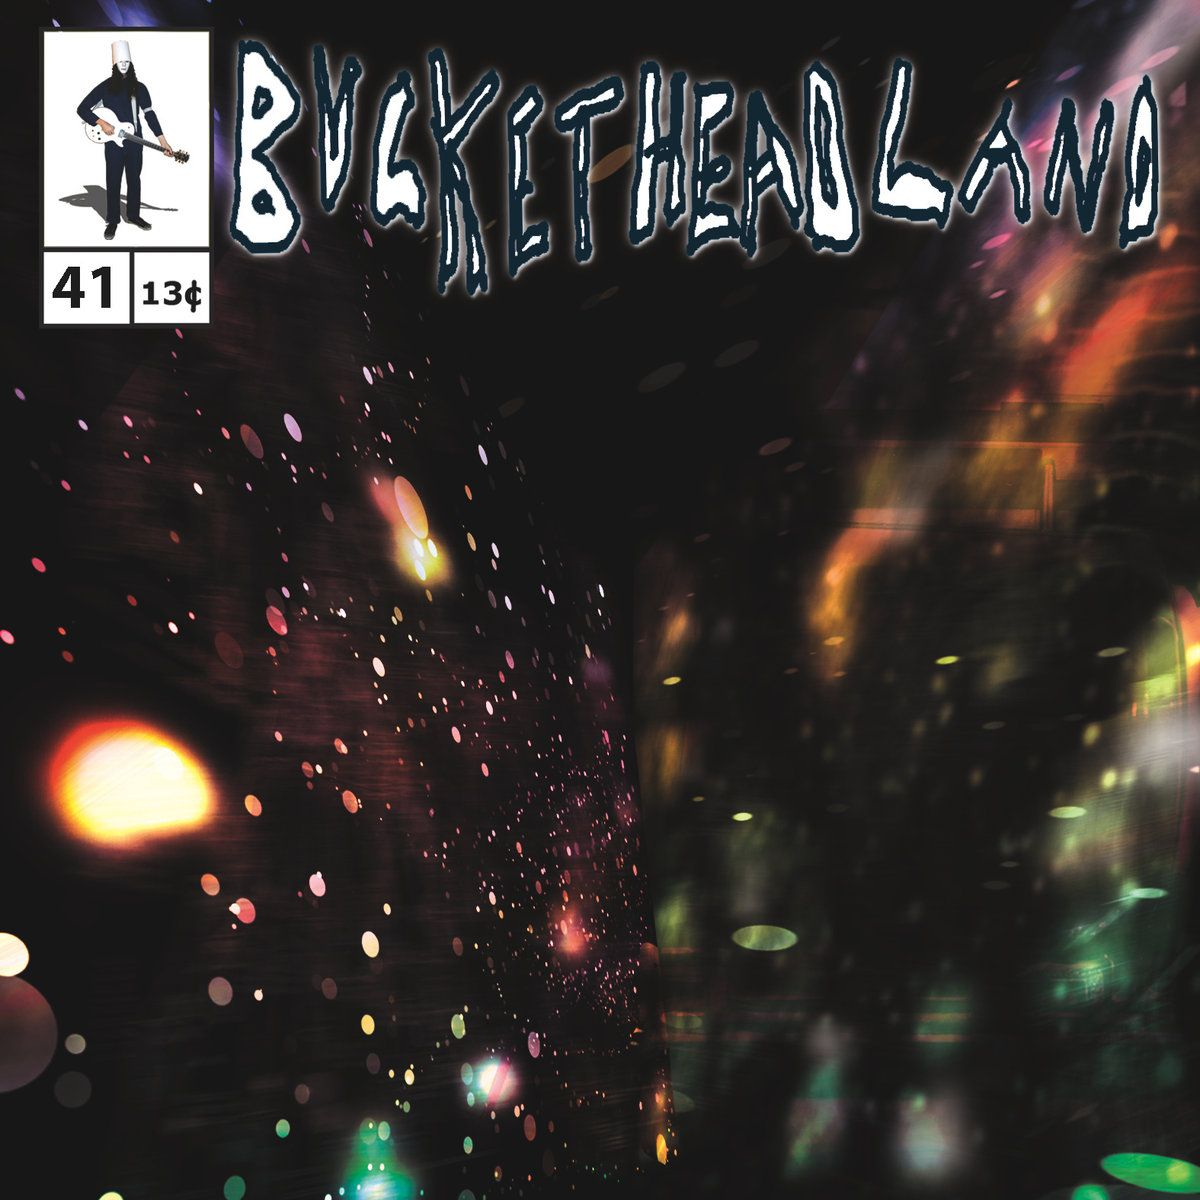 Pike 41 Wishes Music Albums Sky Digital Music